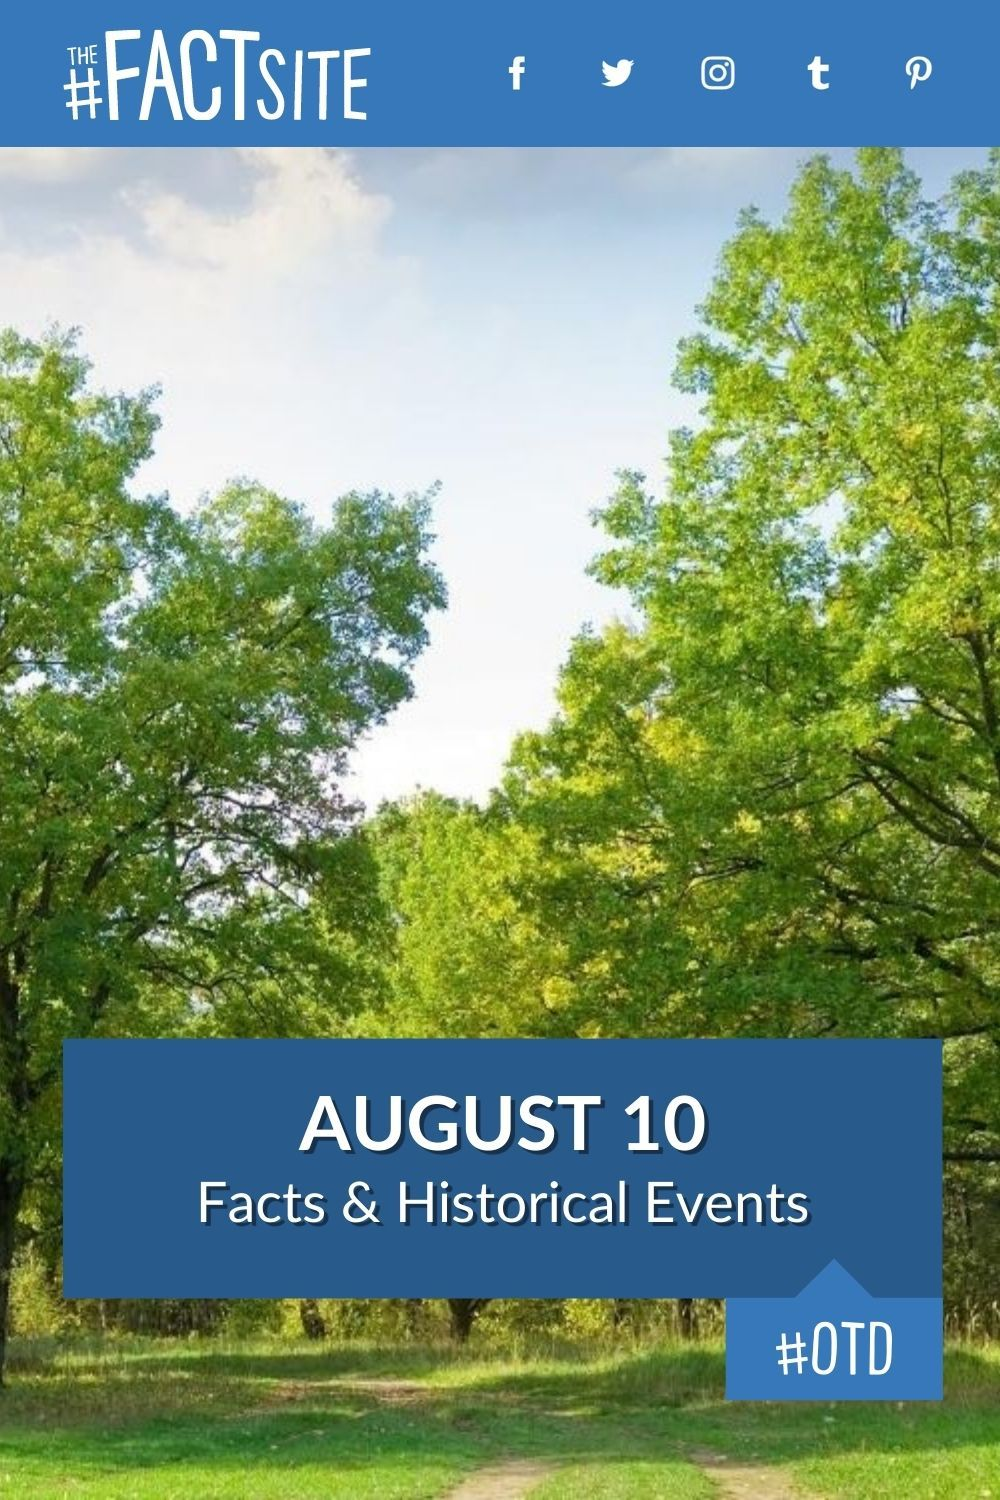 Facts & Historic Events That Happened on August 10